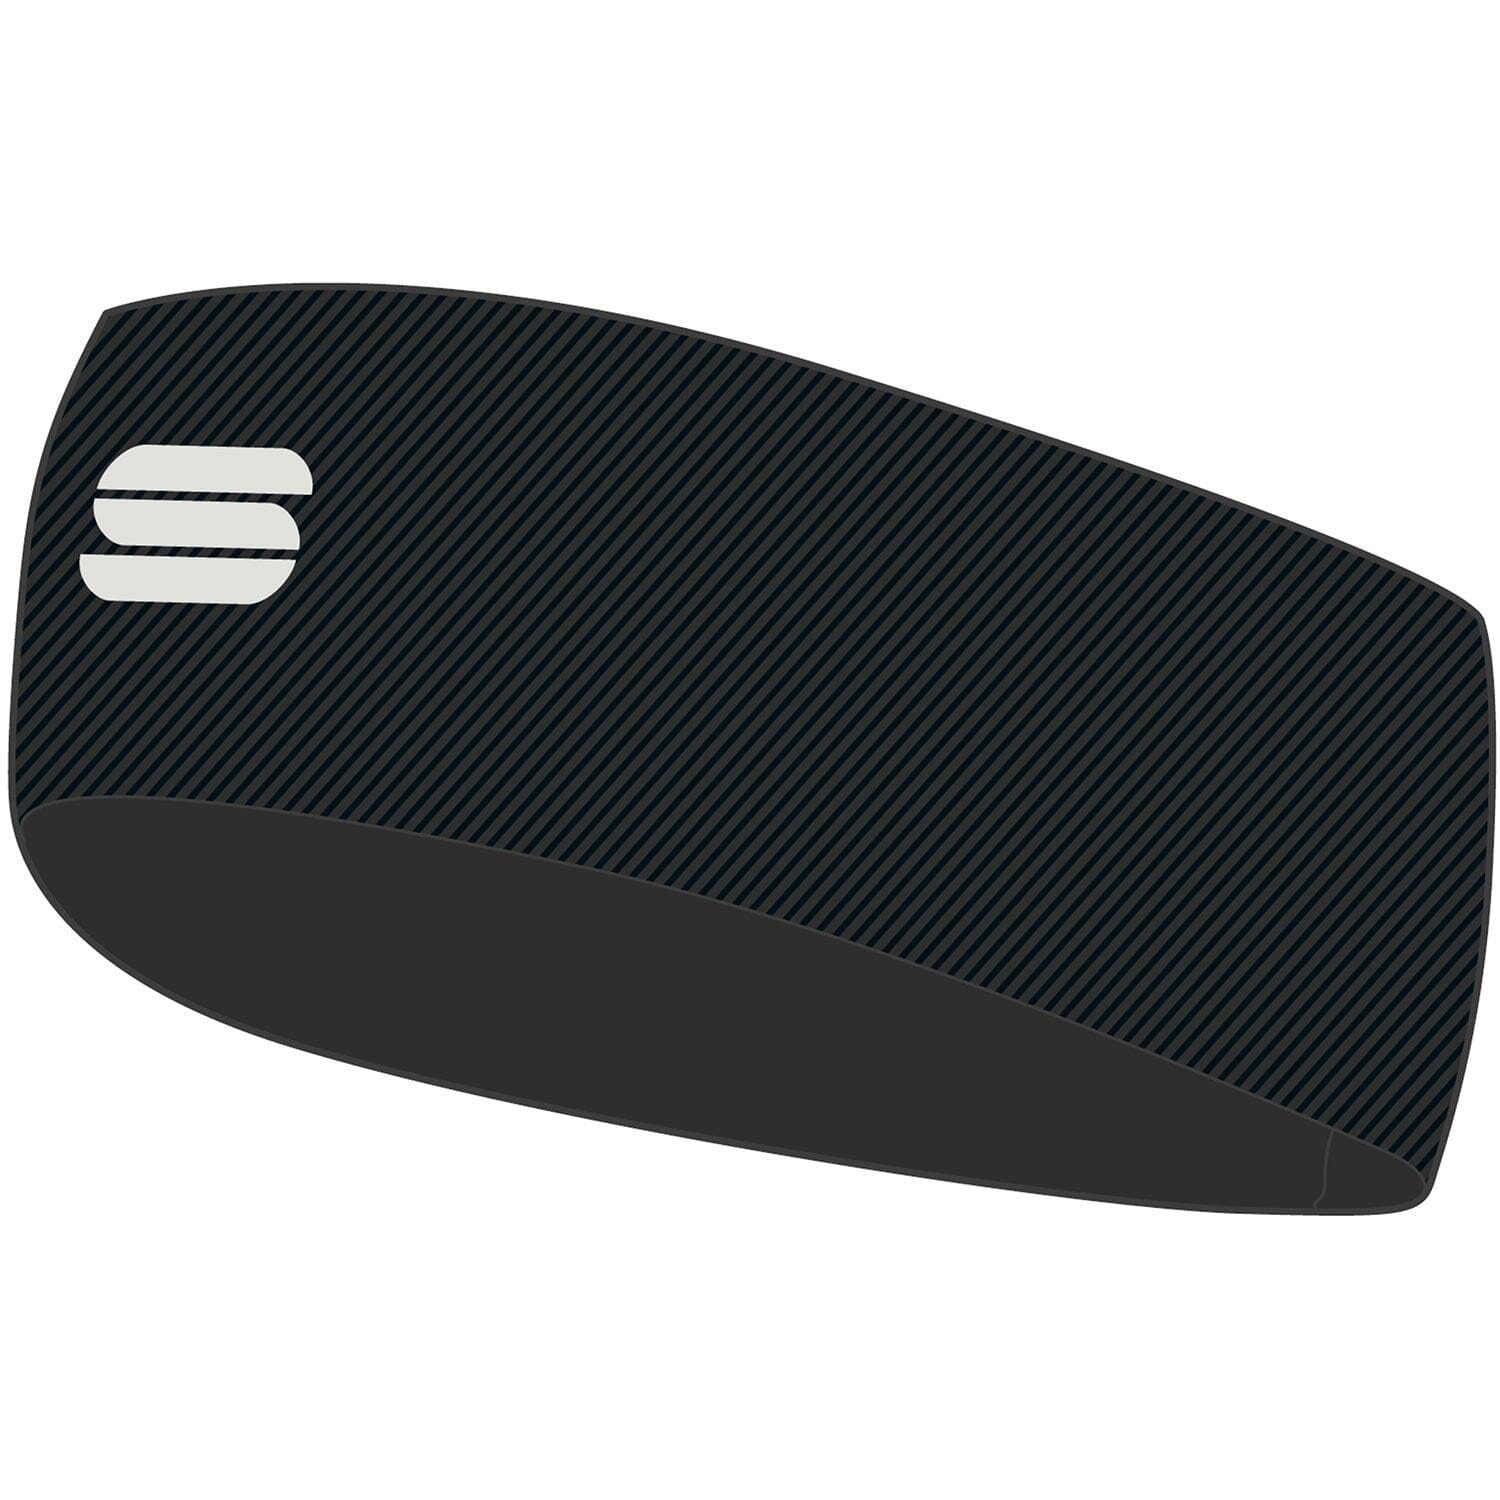 Sportful-Sportful Race Women's Headband-Black-UNI-SF210650028-saddleback-elite-performance-cycling